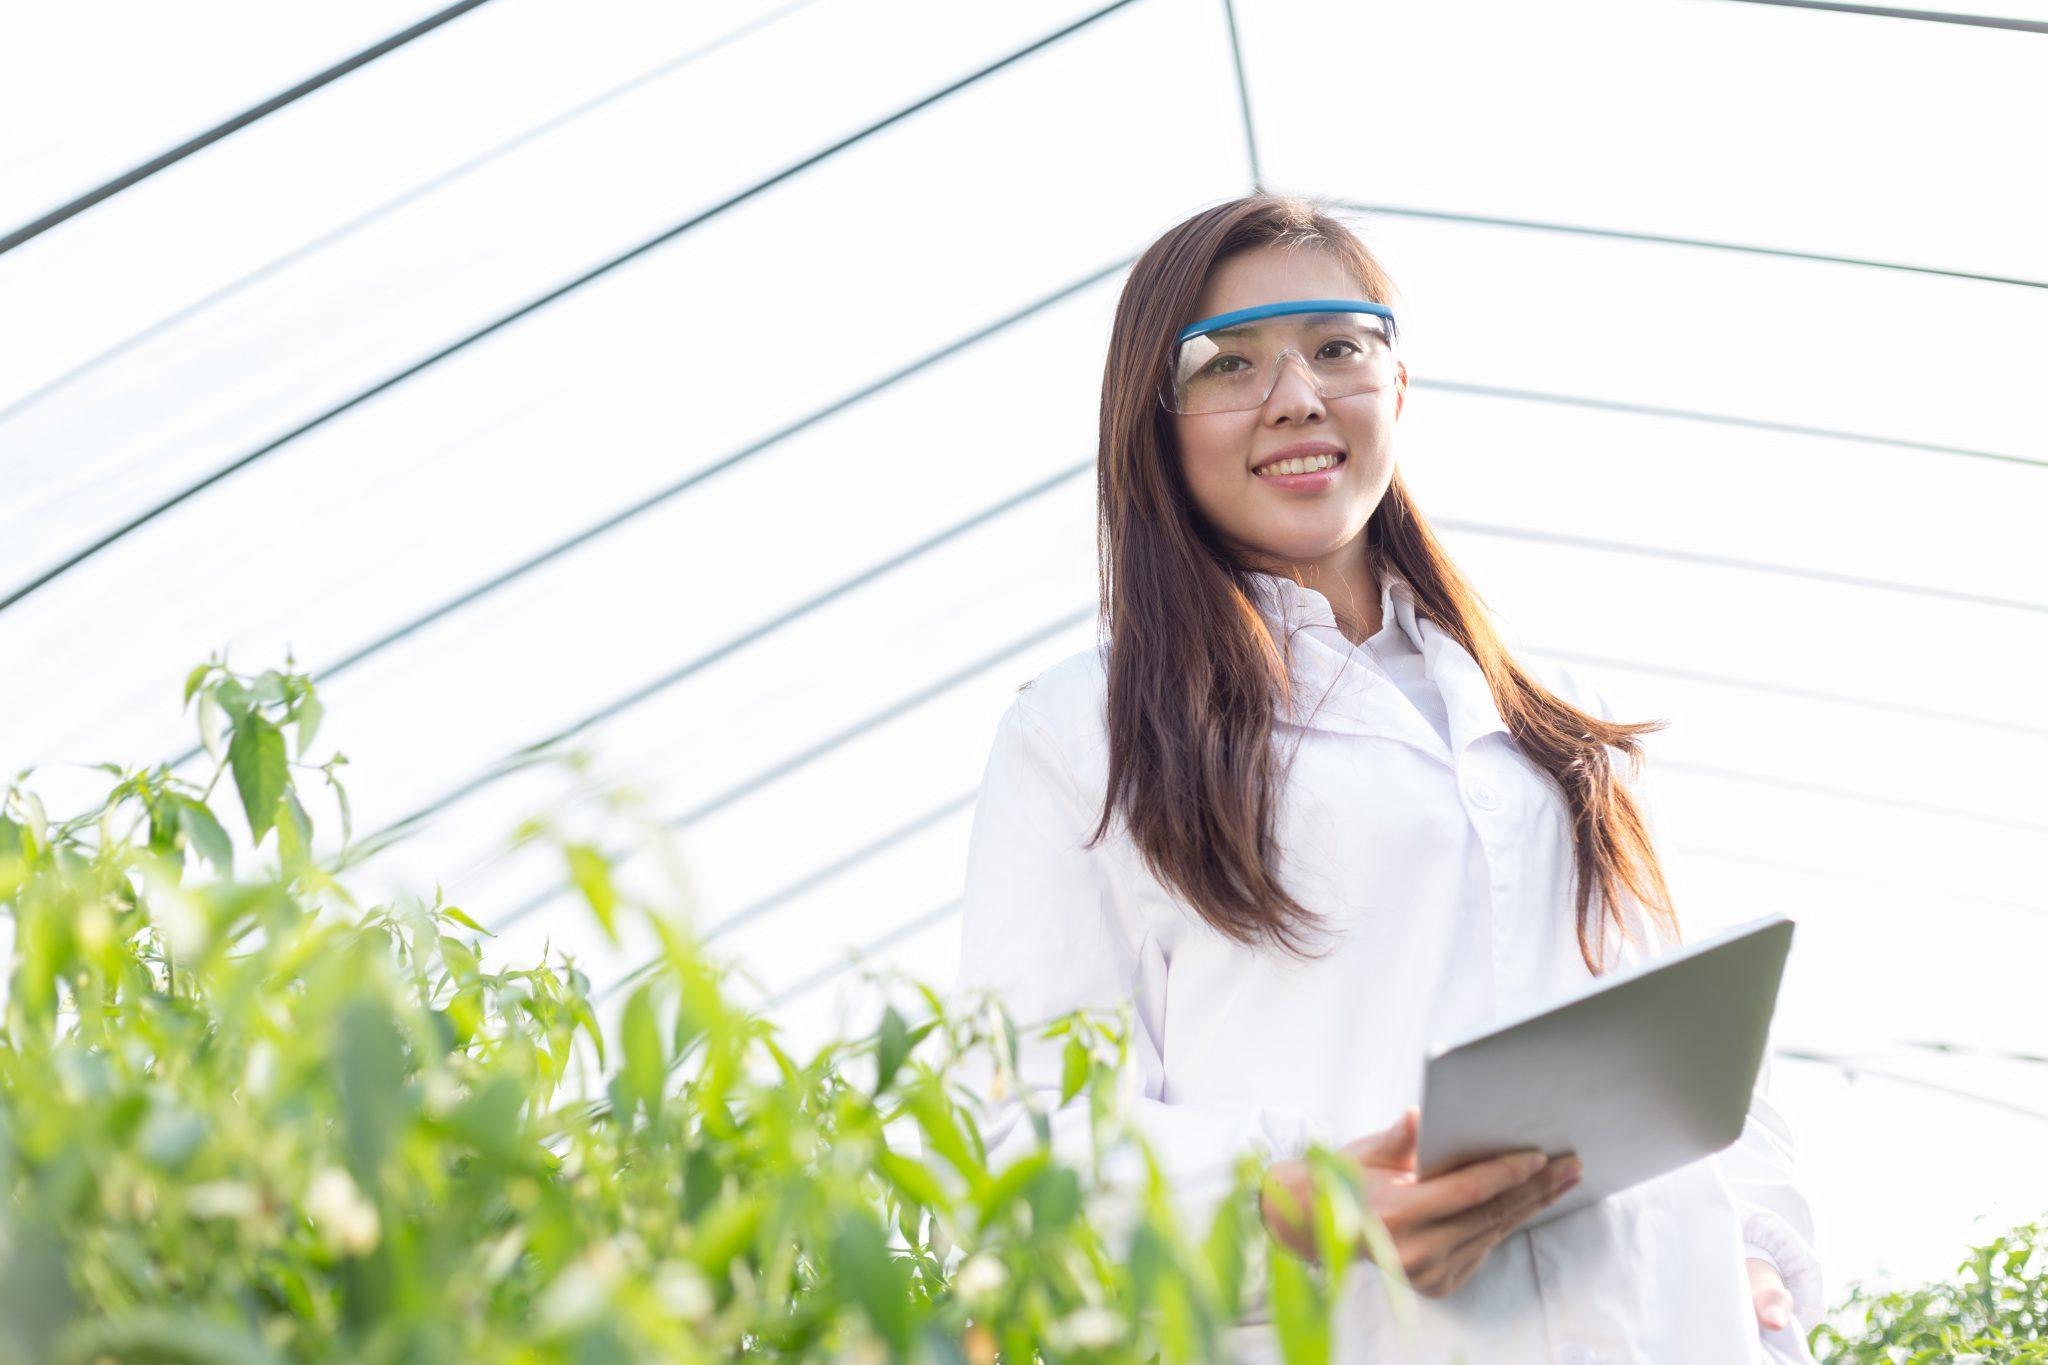 Agriculture scientist standing in a greenhouse with young bioengineered plants. Stock image by zhudifeng.